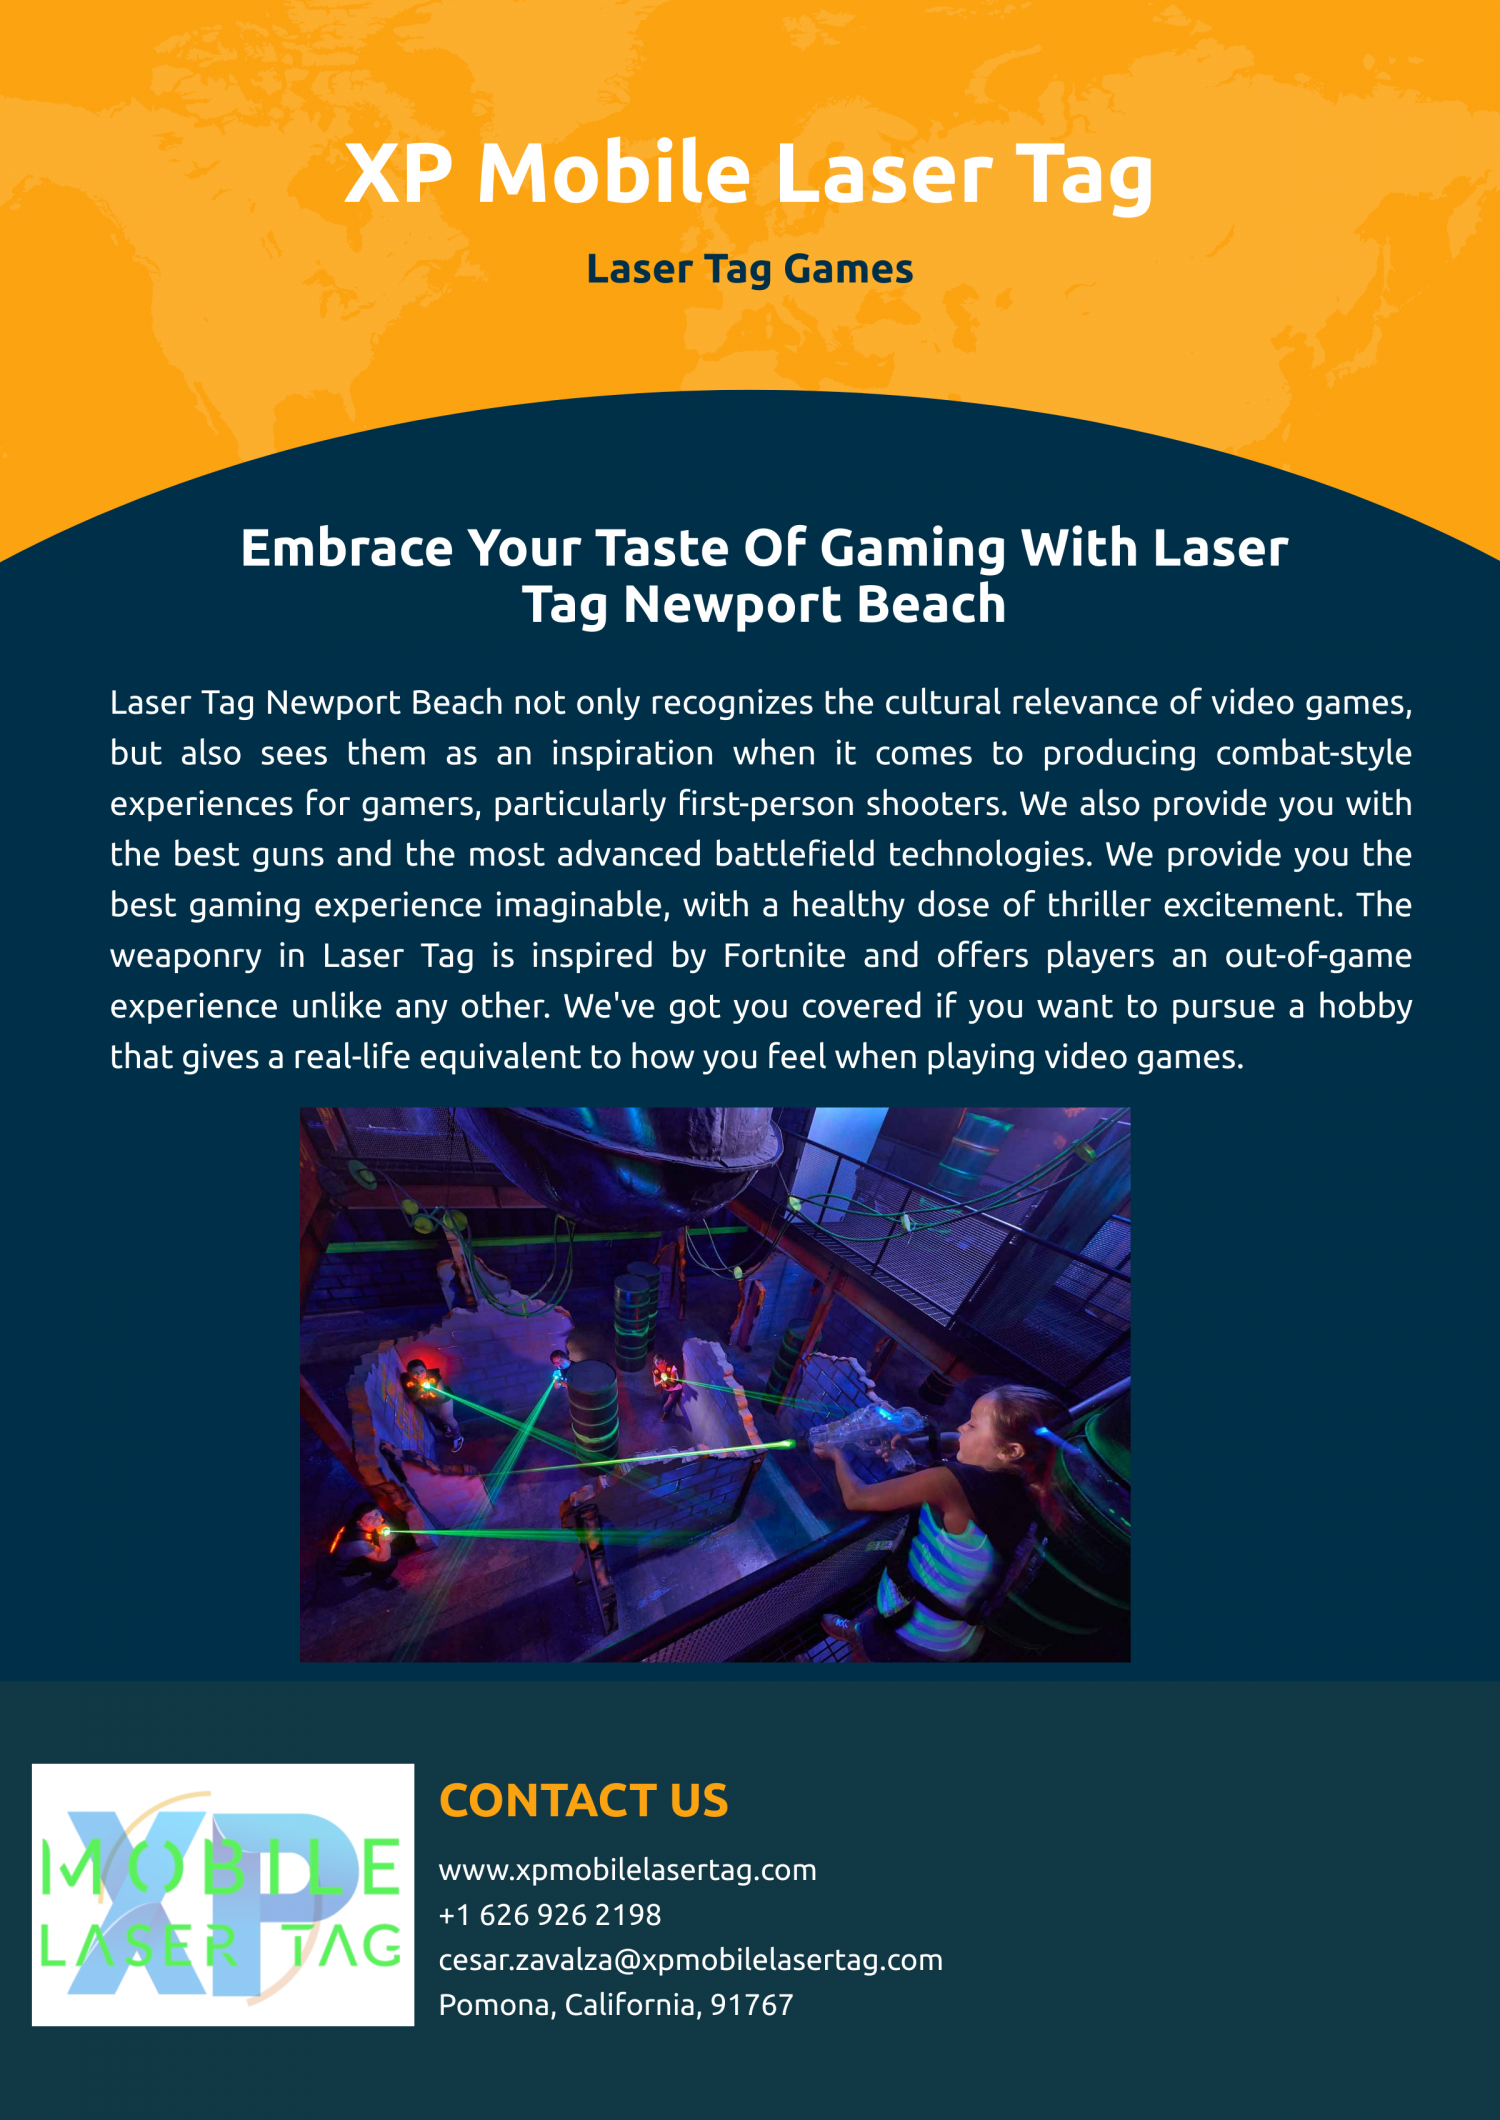 Call of duty laser tag is the largest game played in NYC with XP Mobile Laser Tag: Infographic